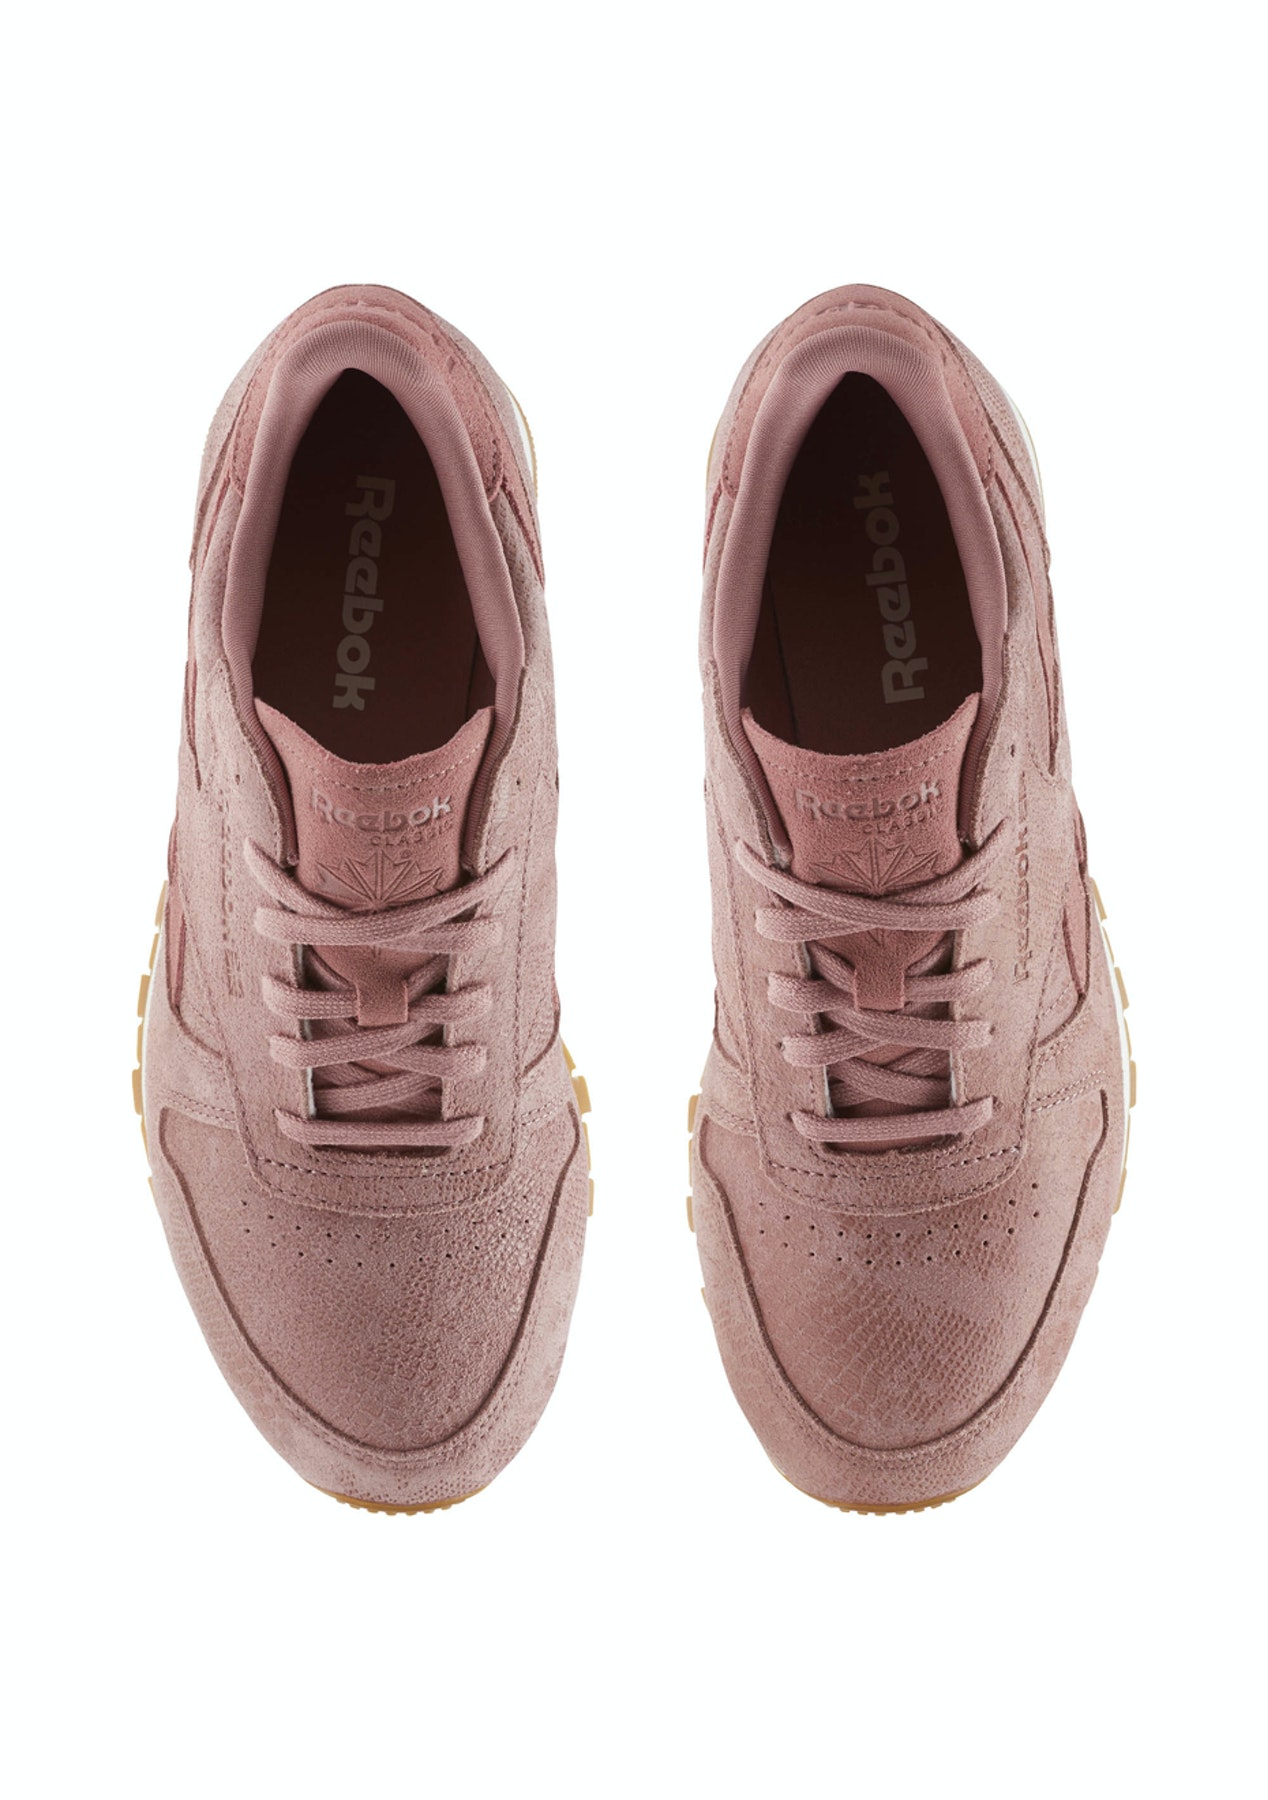 5024eb68f22 Reebok Womens - Classic Leather Clean Exotics Sandy Rose Chalk Gum - 50%  Off Reebok - Onceit